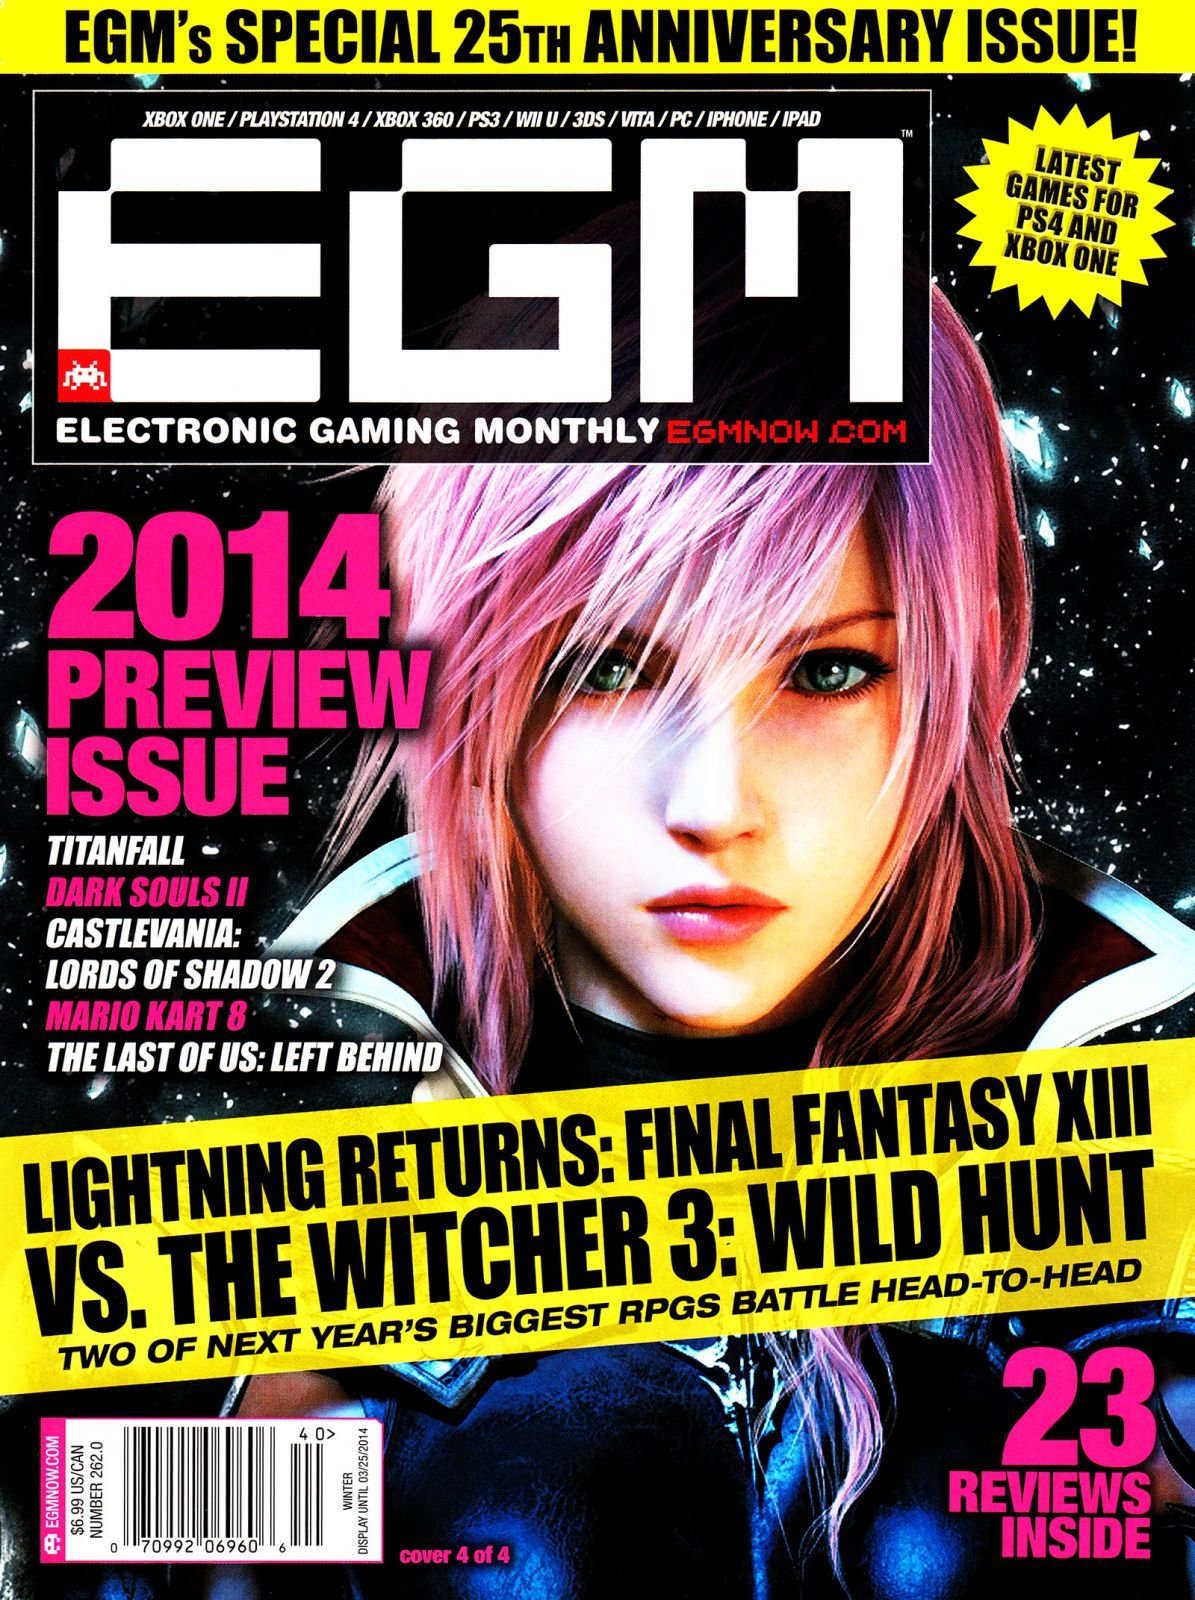 Electronic Gaming Monthly Issue 262 Winter 2014 (Cover 4 of 4)